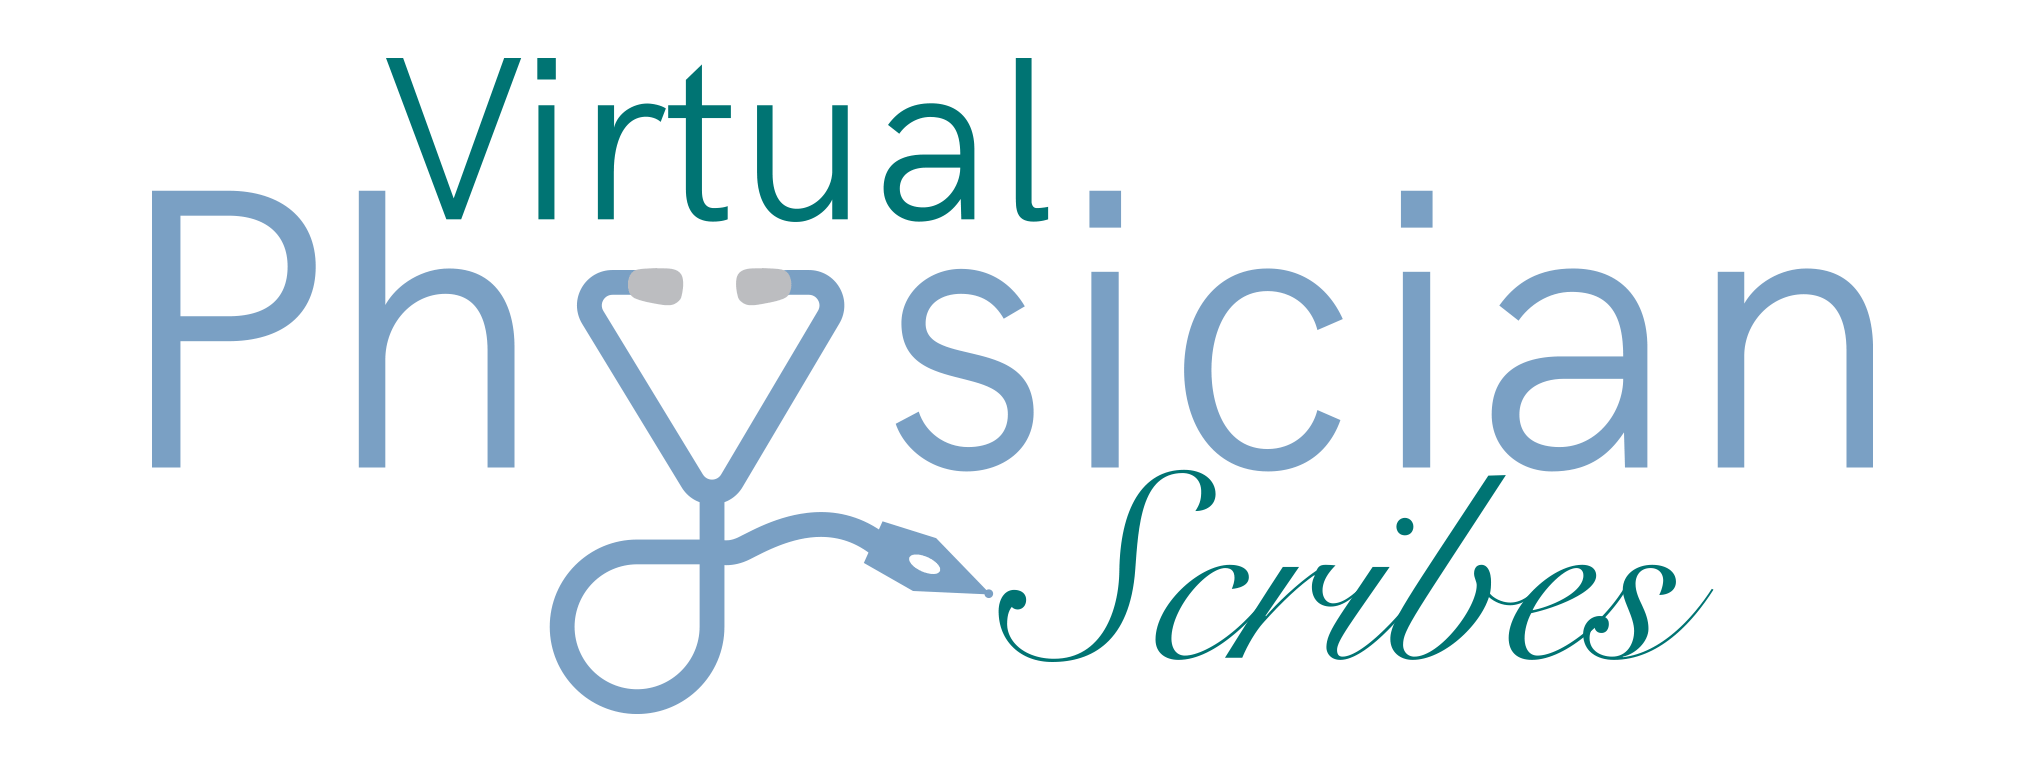 Virtual Physician Scribes is Proud to Launch Virtual Medical Scribes, Helping Doctors Increase Efficiency in a Busy Practice